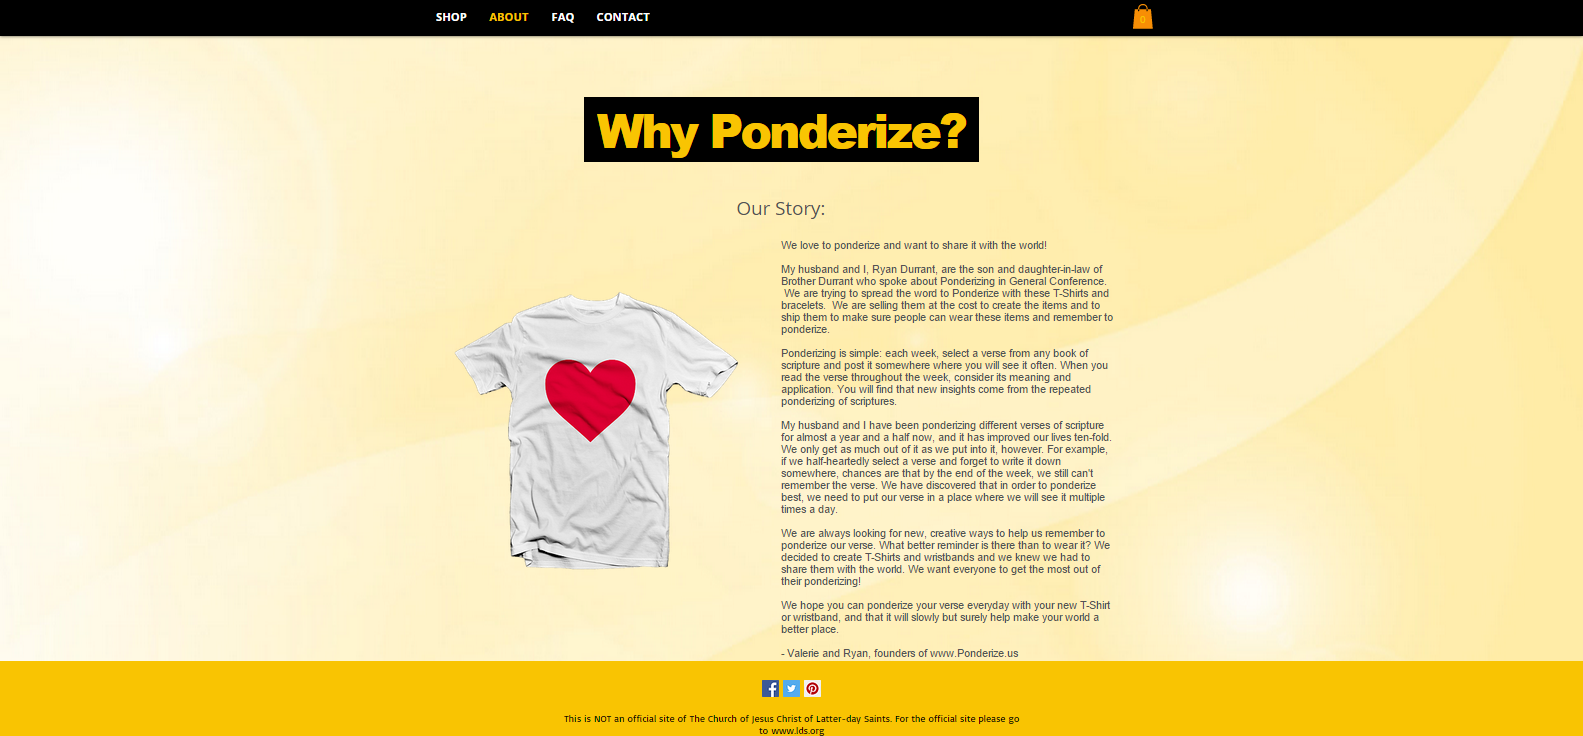 The website – ponderize.us – disappeared Sunday night Oct. 4, 2015 after online backlash and accusations of using a religious occasion for personal gain. (Screenshot from Ponderize.us)